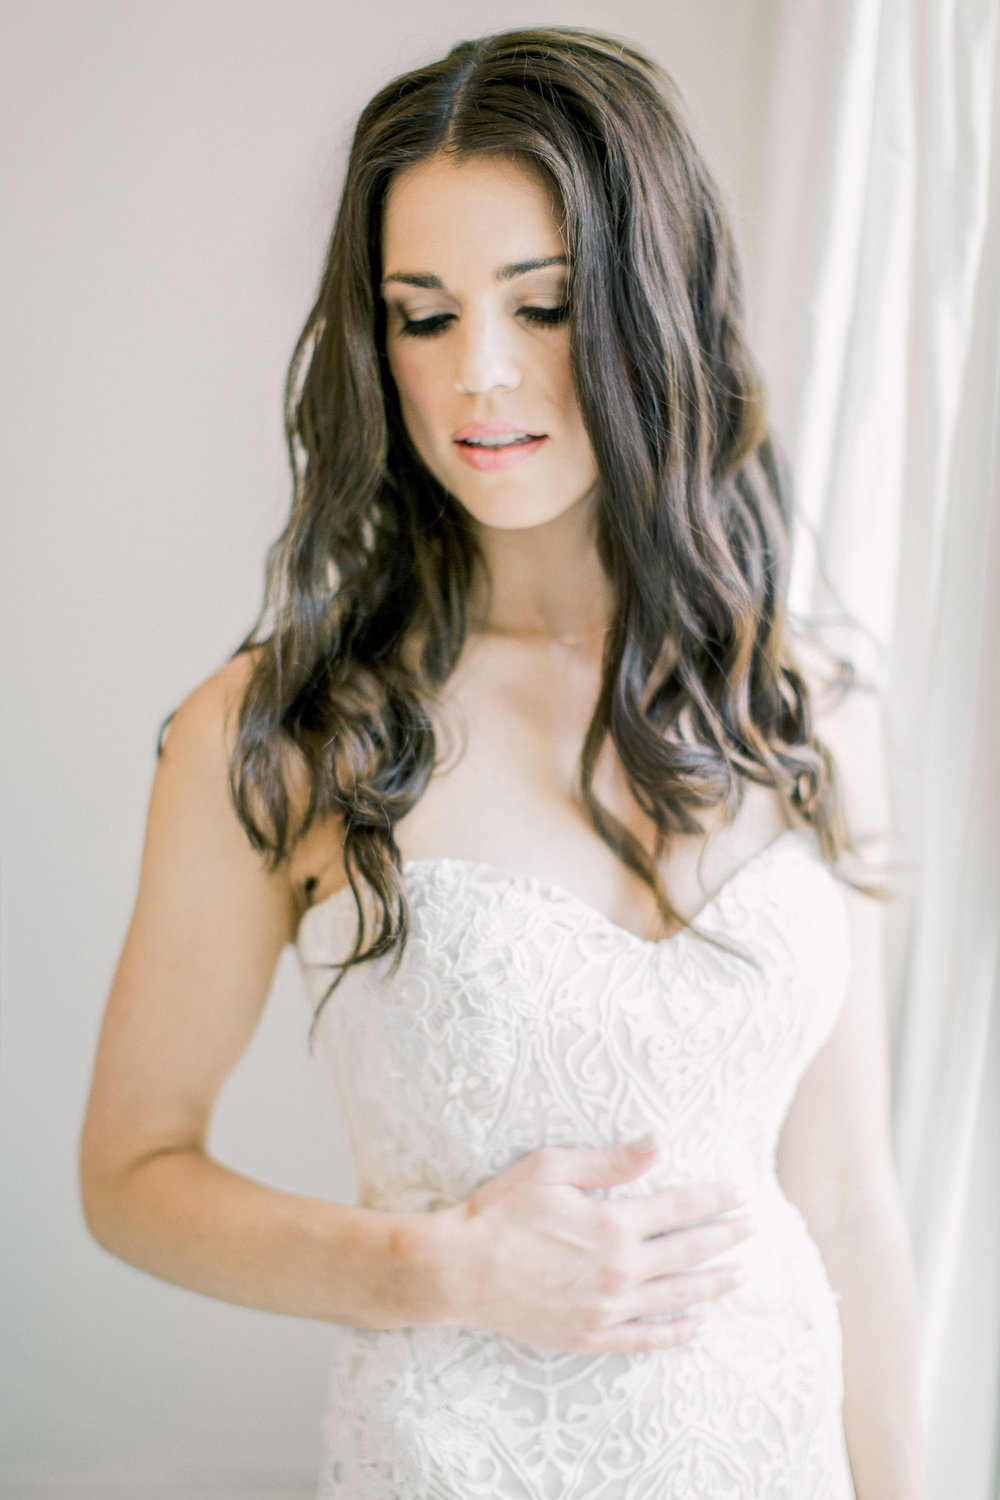 gauteng wedding photographer clareece smit037.jpg